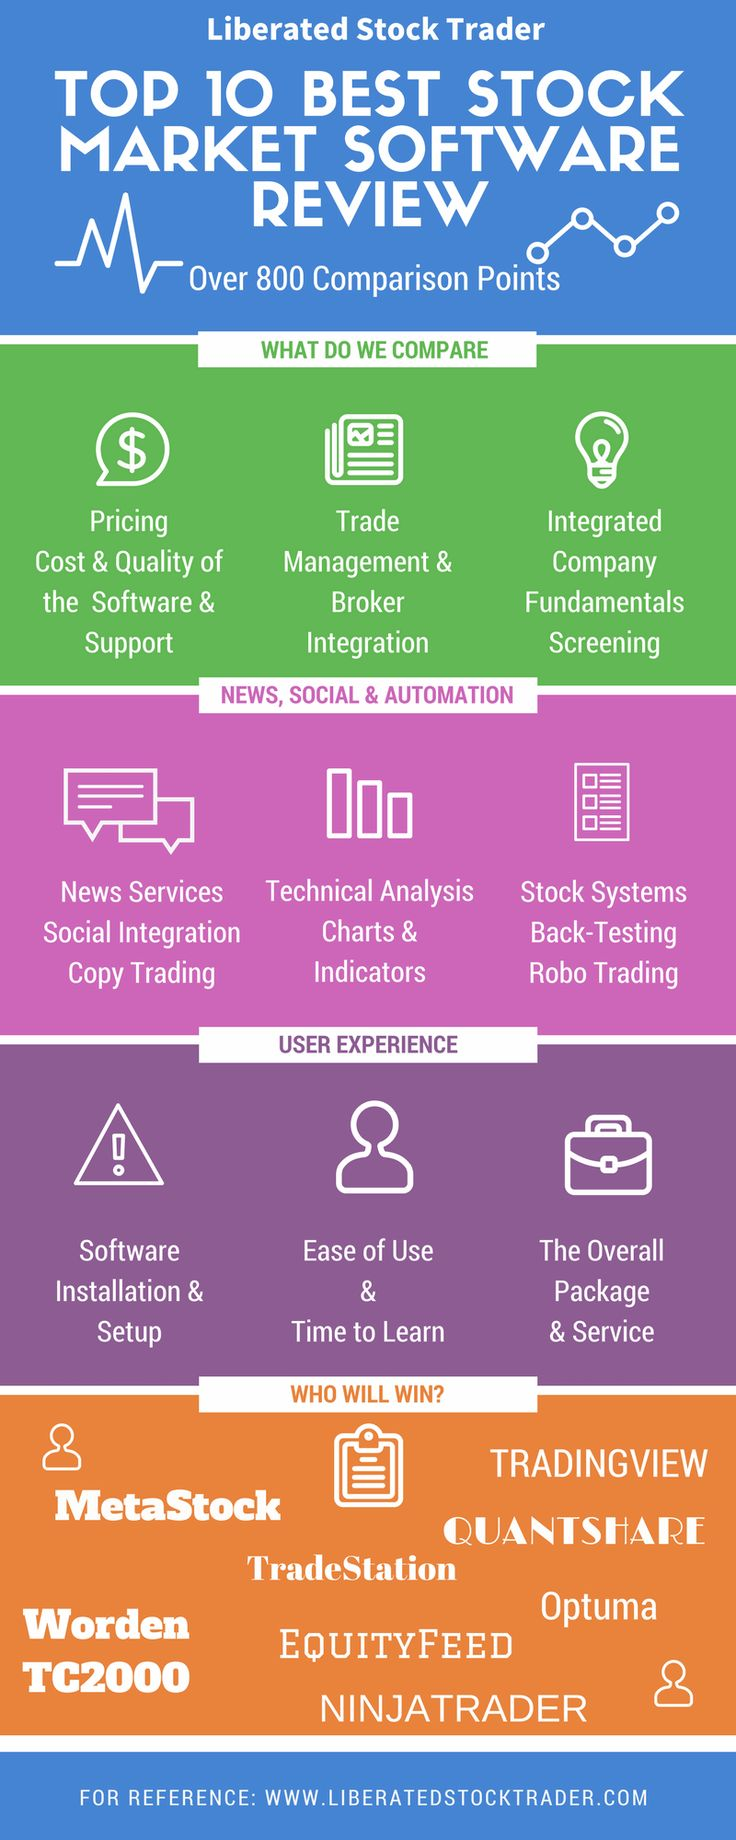 Top 10 Stock Market Software Review